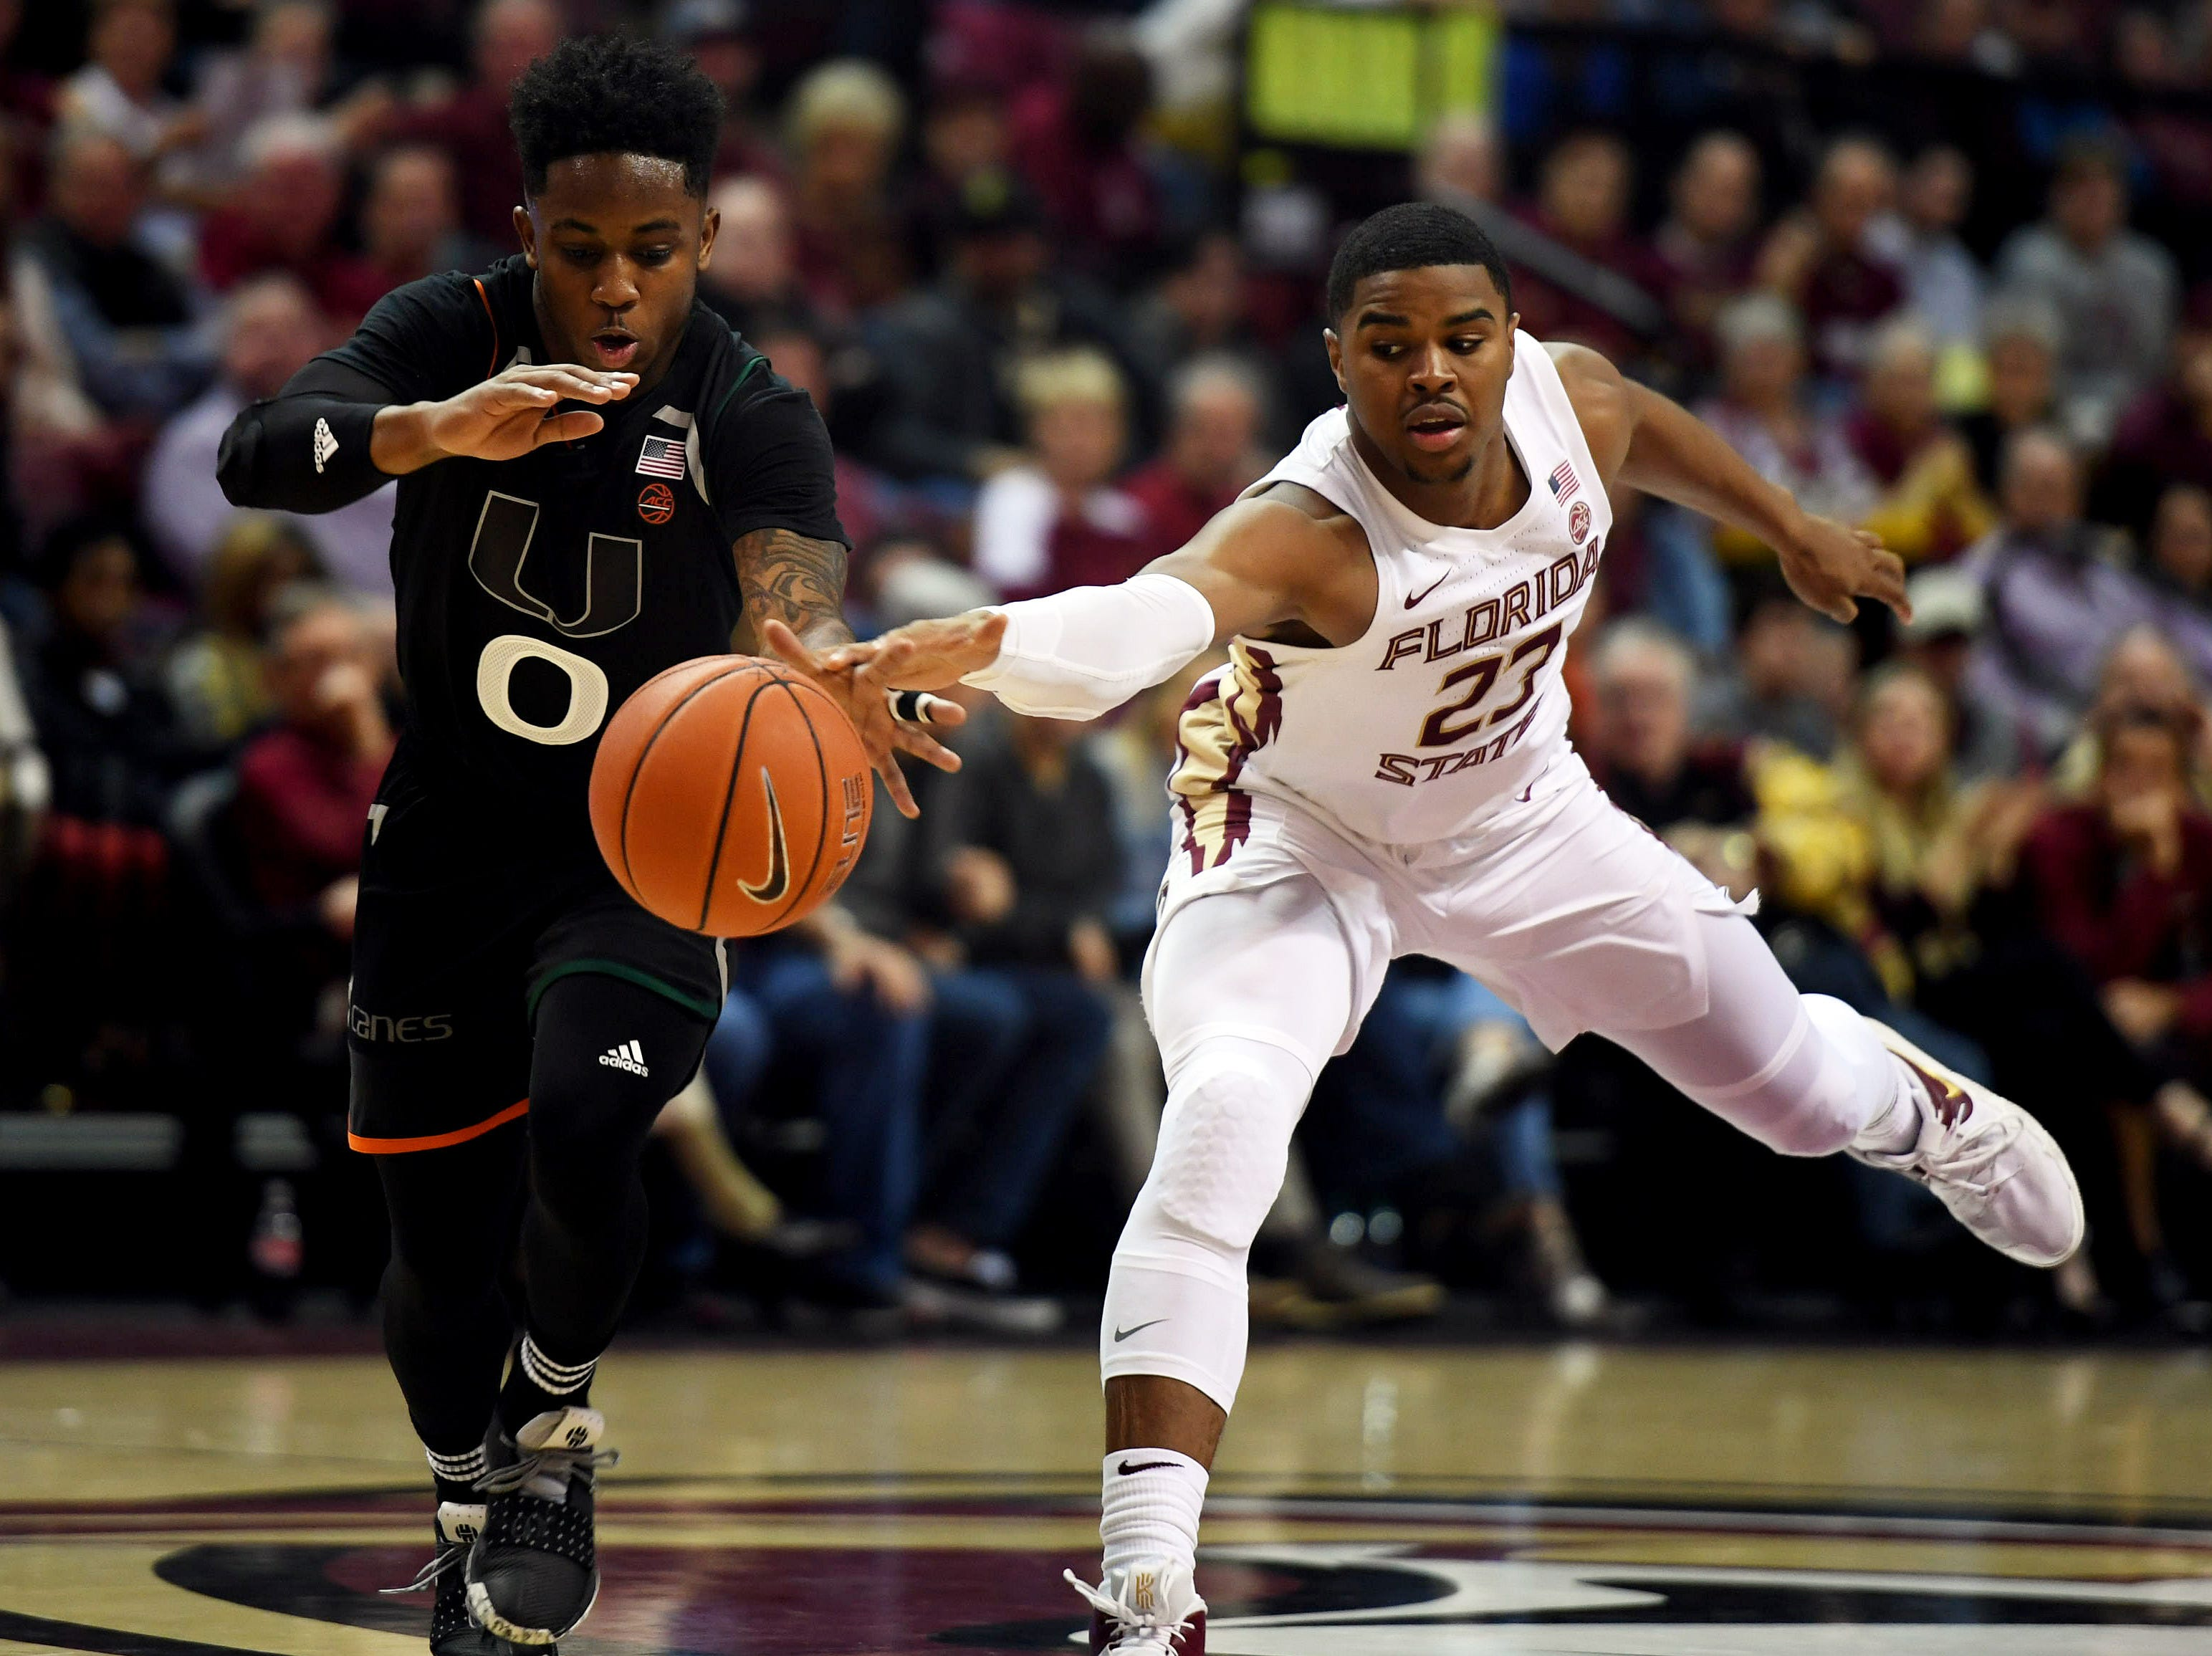 Jan 9, 2019; Tallahassee, FL, USA; Miami Hurricanes guard Chris Lykes (0) fights for a loose ball against Florida State Seminoles guard MJ Walker (23) during the first half at Donald L. Tucker Center. Mandatory Credit: Melina Myers-USA TODAY Sports